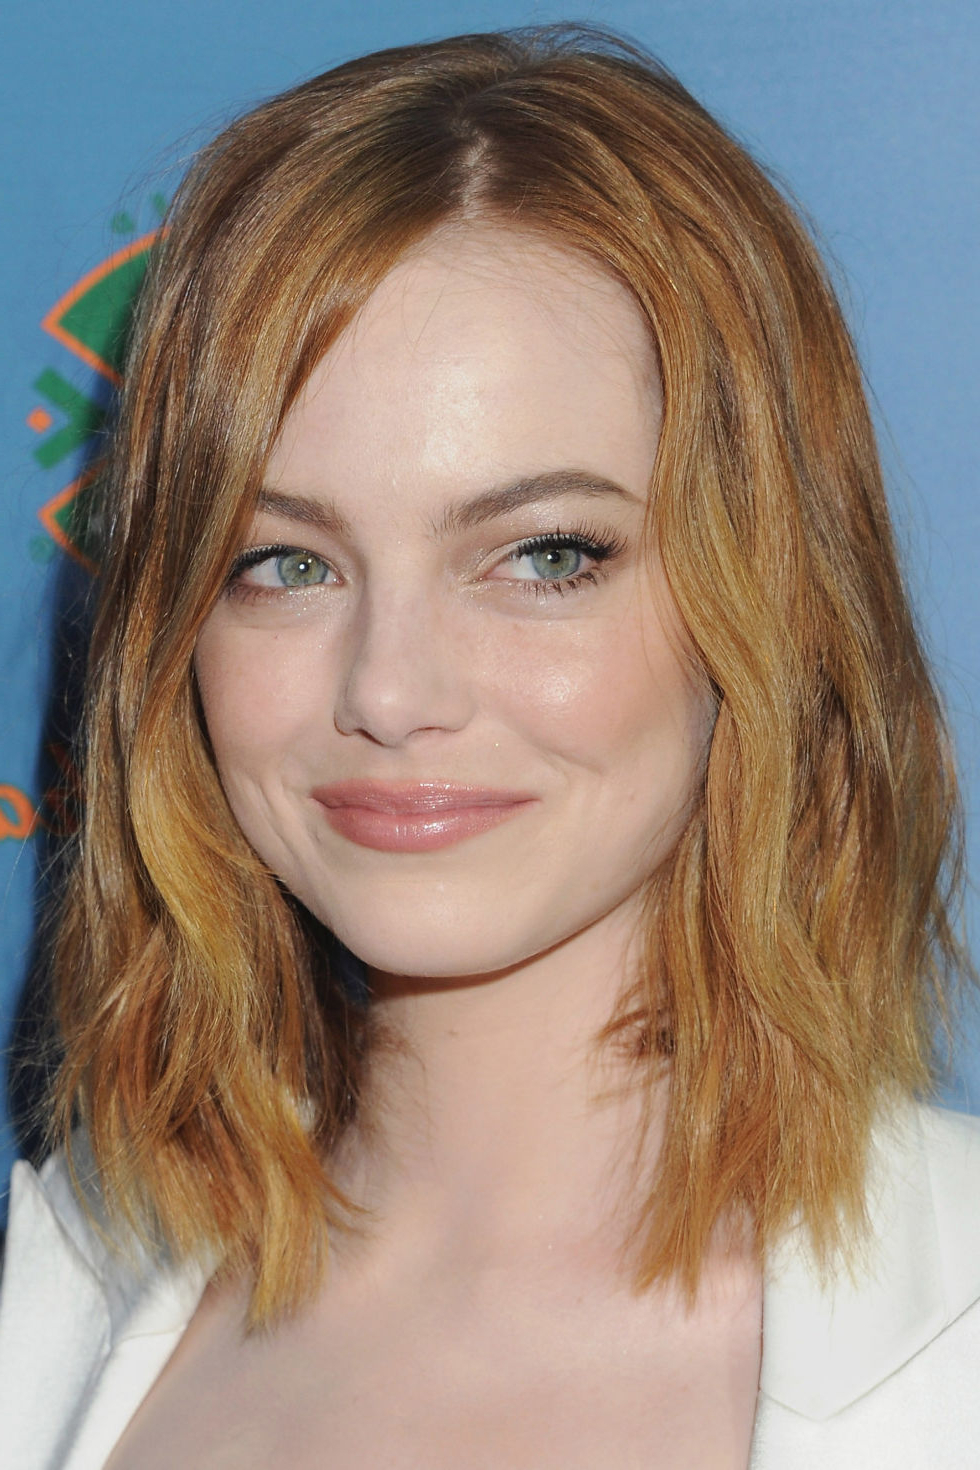 Hair Cuts : Short Haircuts For Women With Wavy Hair Very Hairstyles In Famous Medium Hairstyles For Very Thick Hair (View 17 of 20)